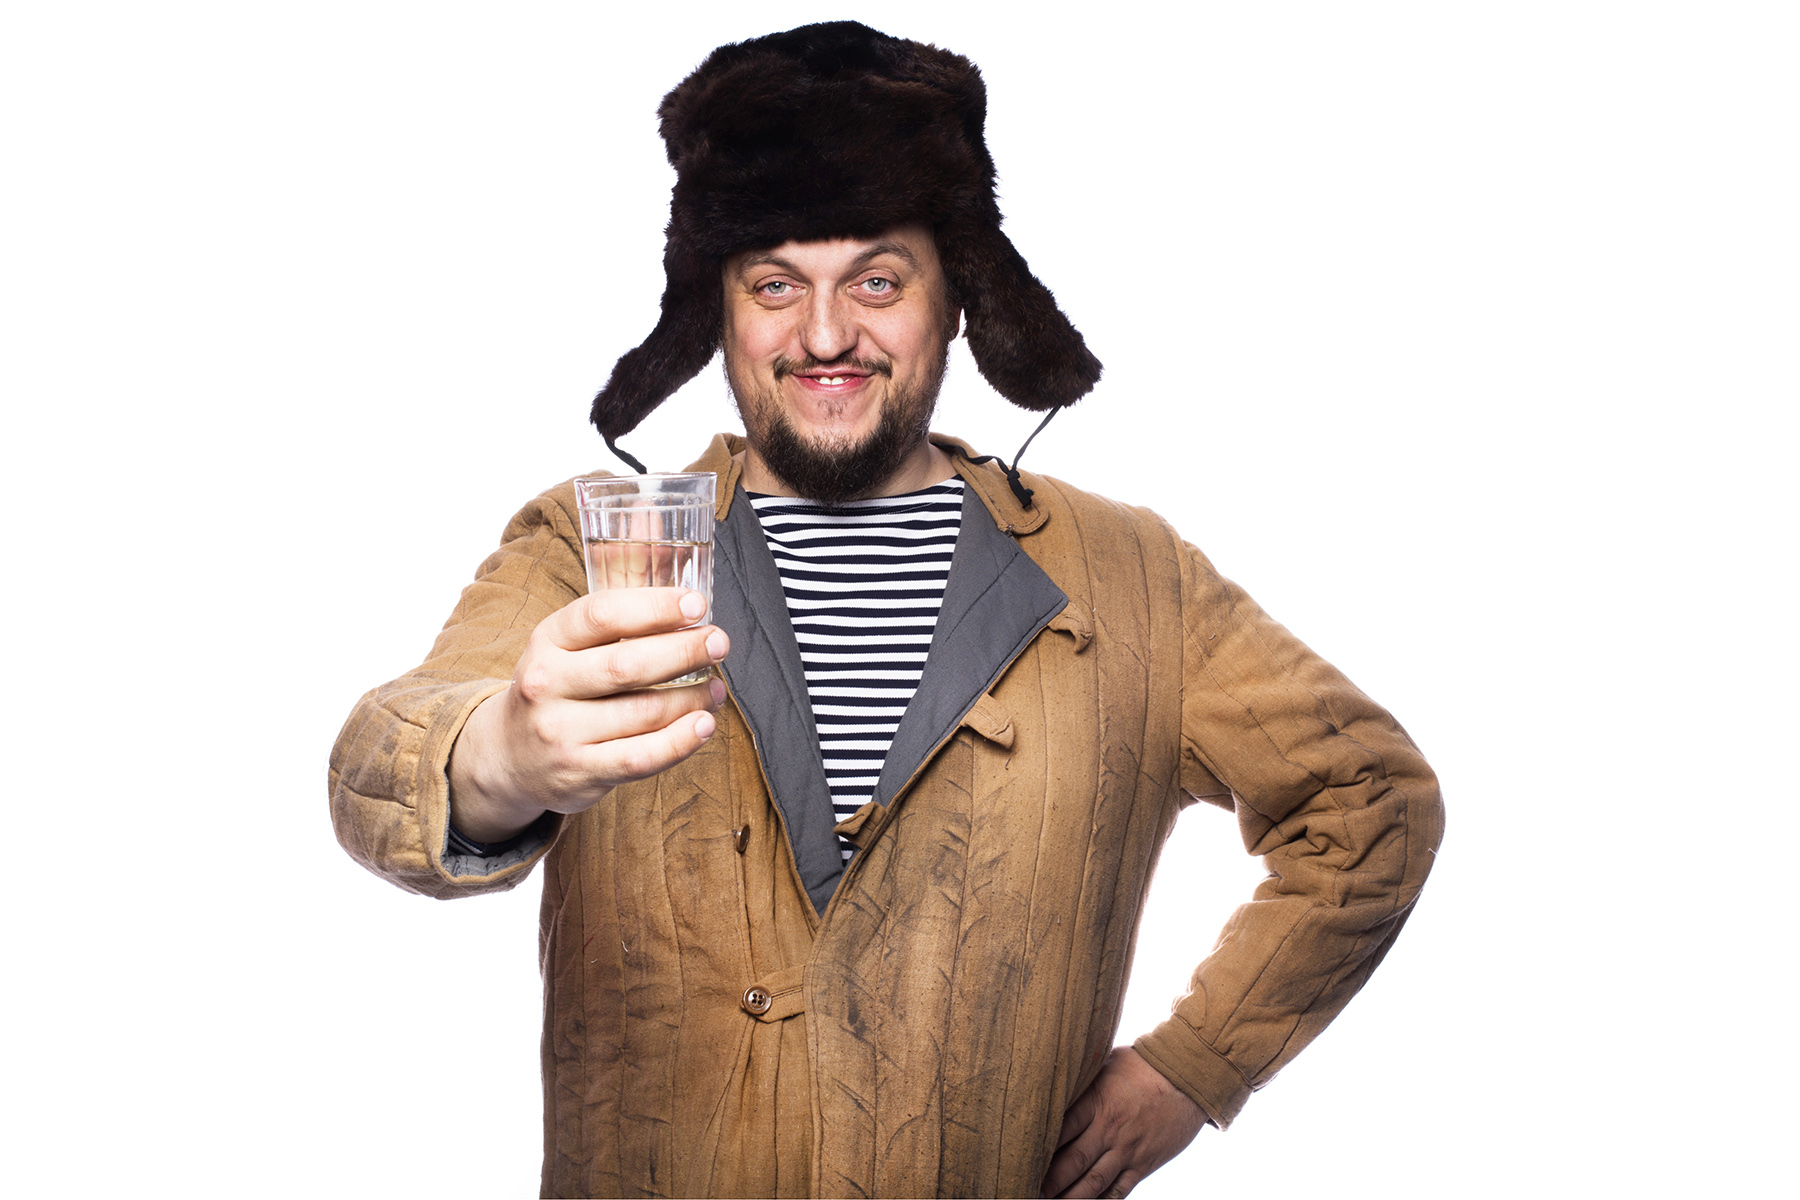 Russian man with a glass of vodka